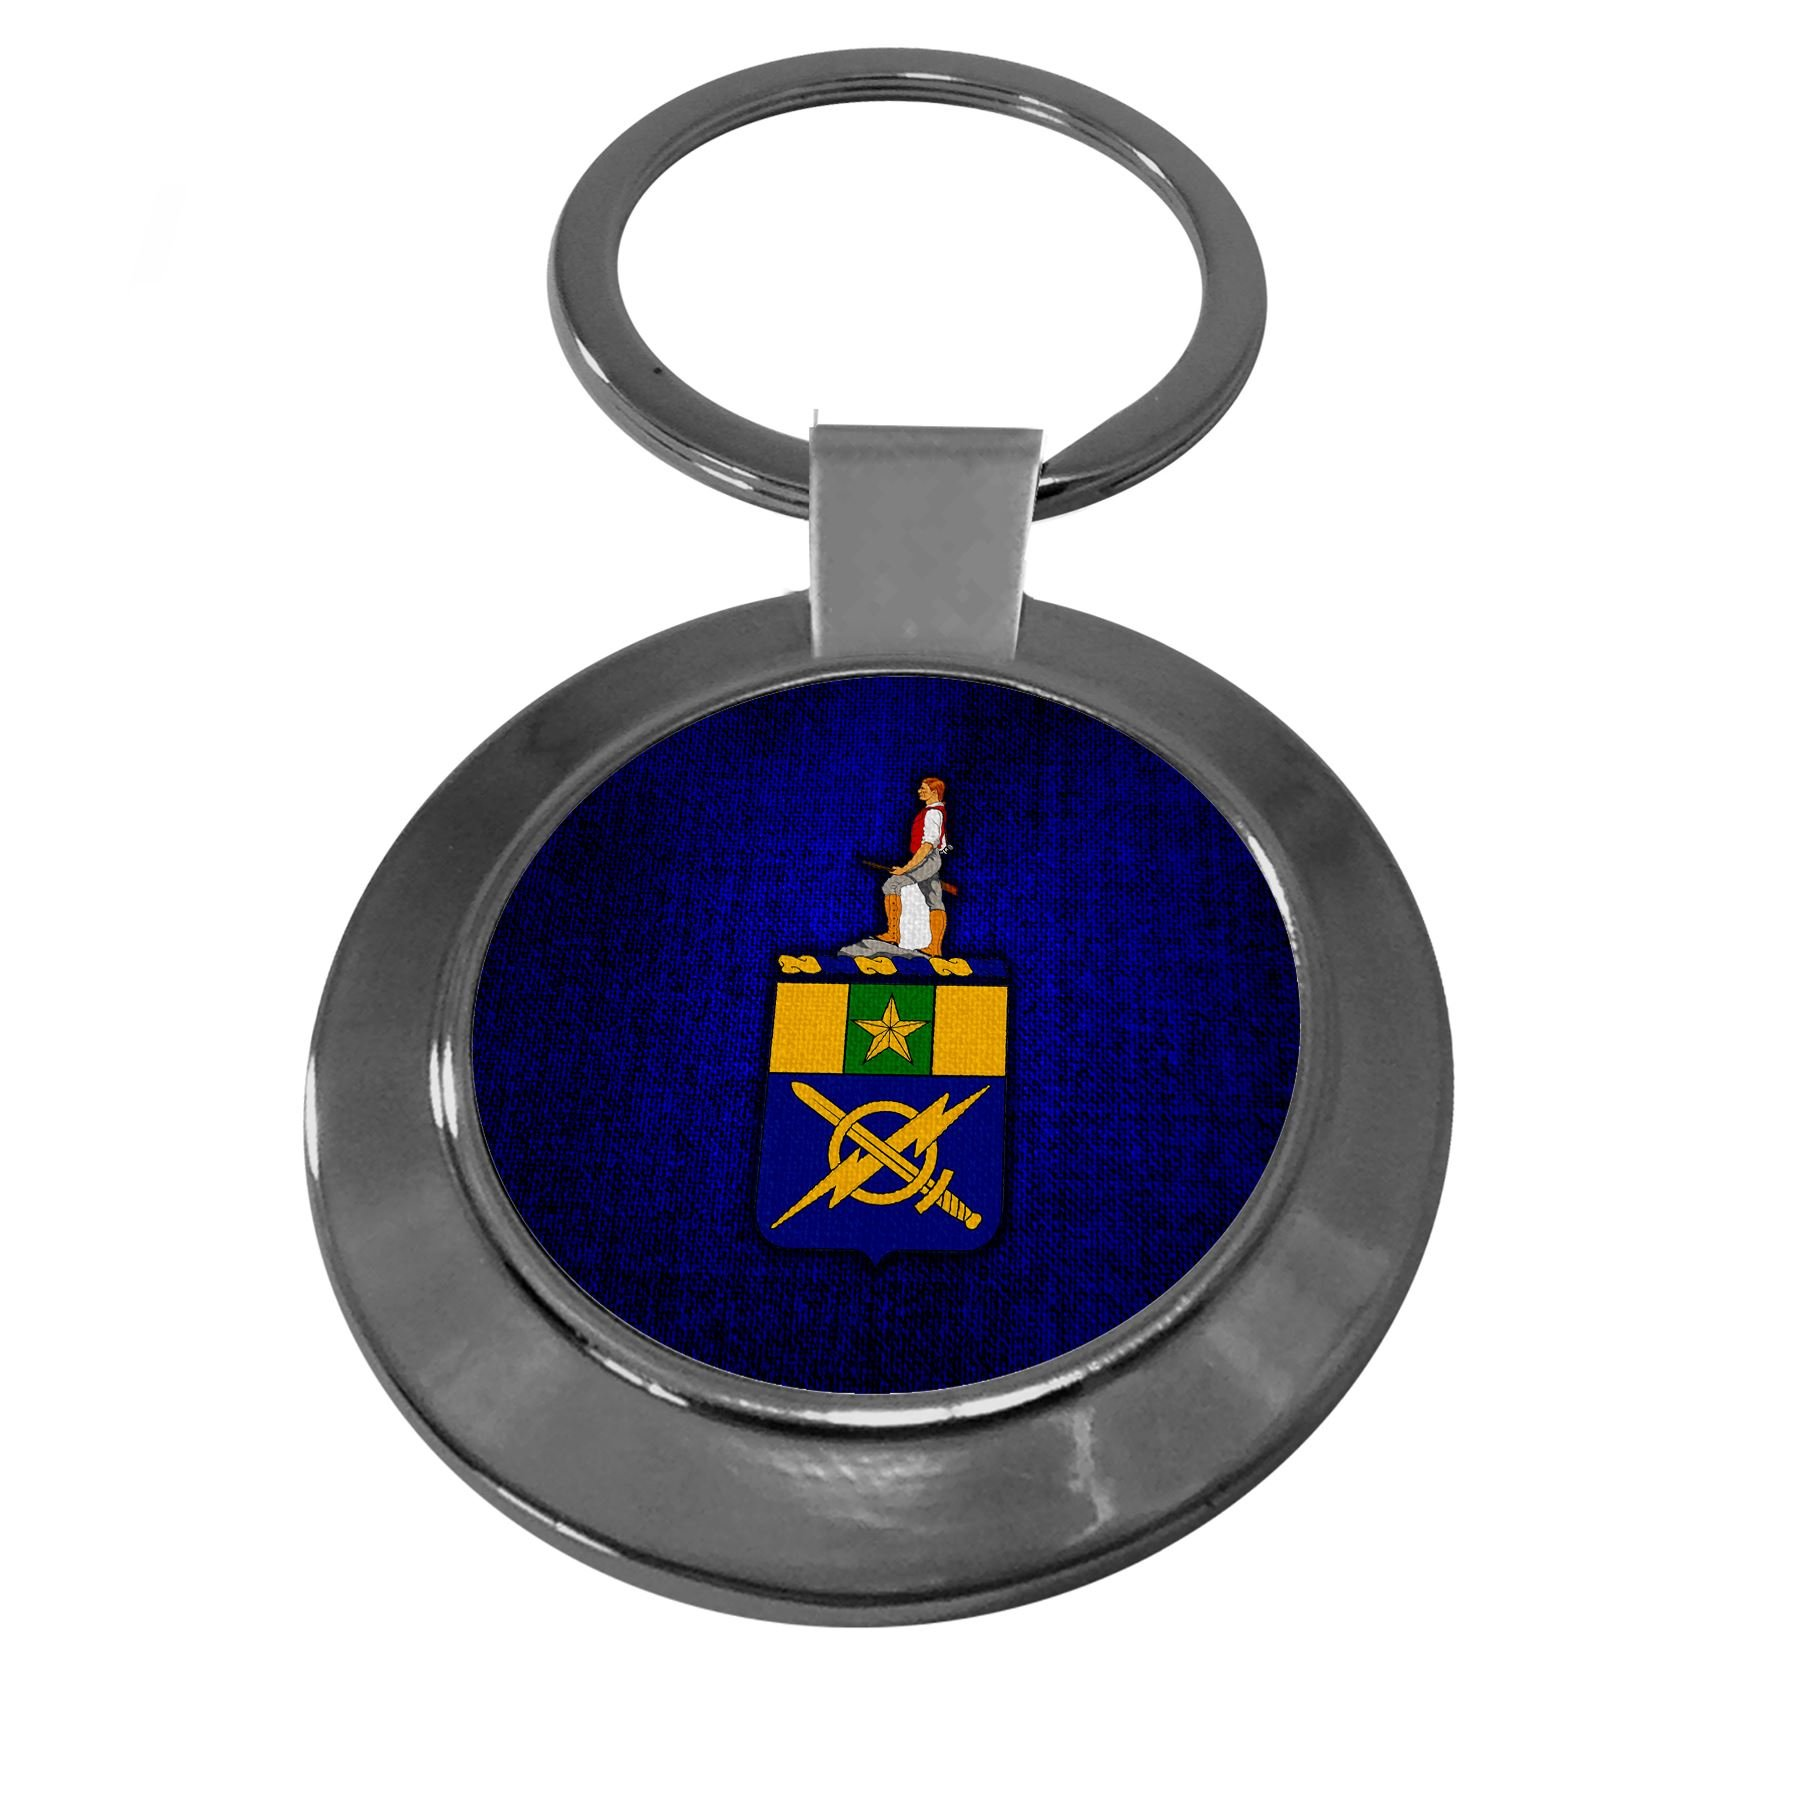 Premium Key Ring with U.S. Army 302nd Information Ops (302nd IOC), coat of arms